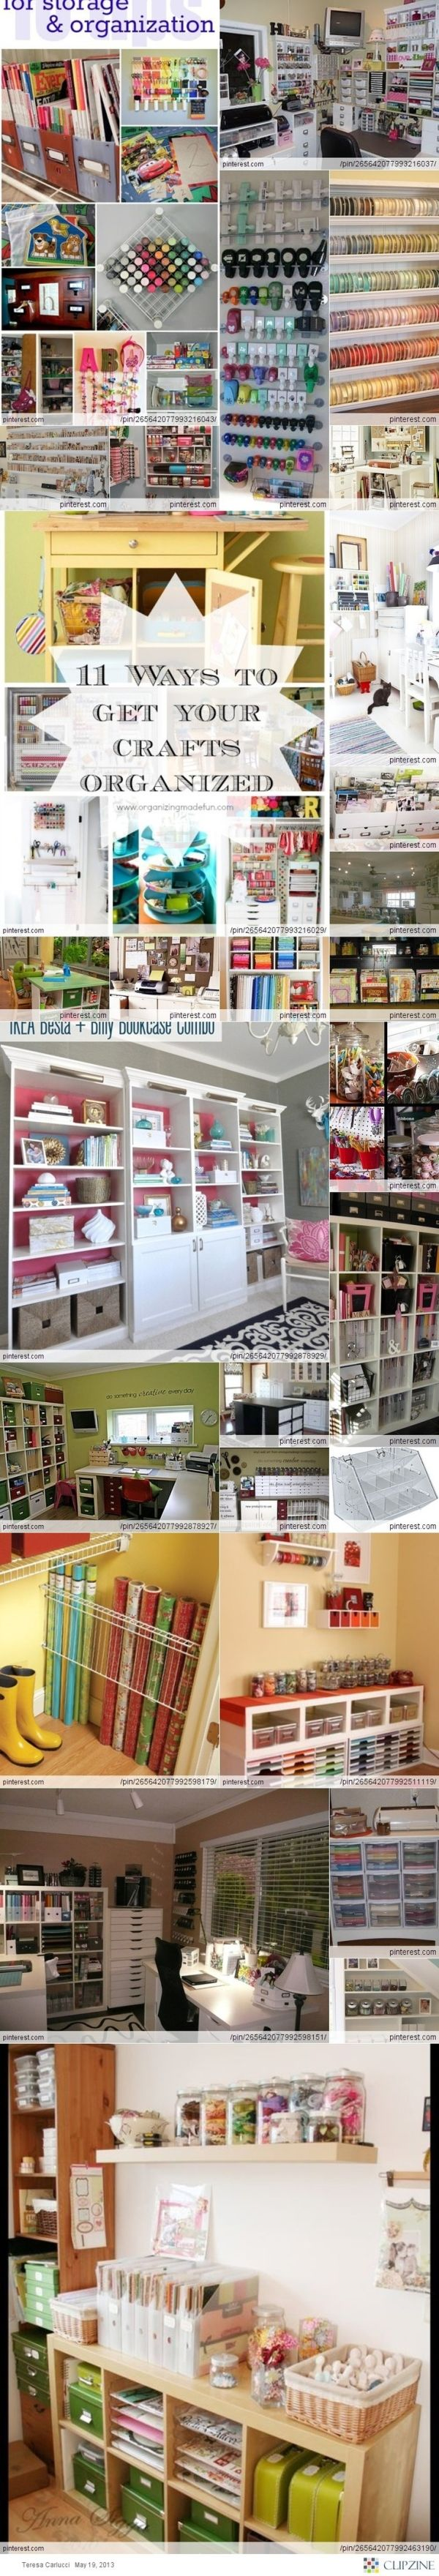 Craft/Scrapbook Room Inspiration for Getting Organized